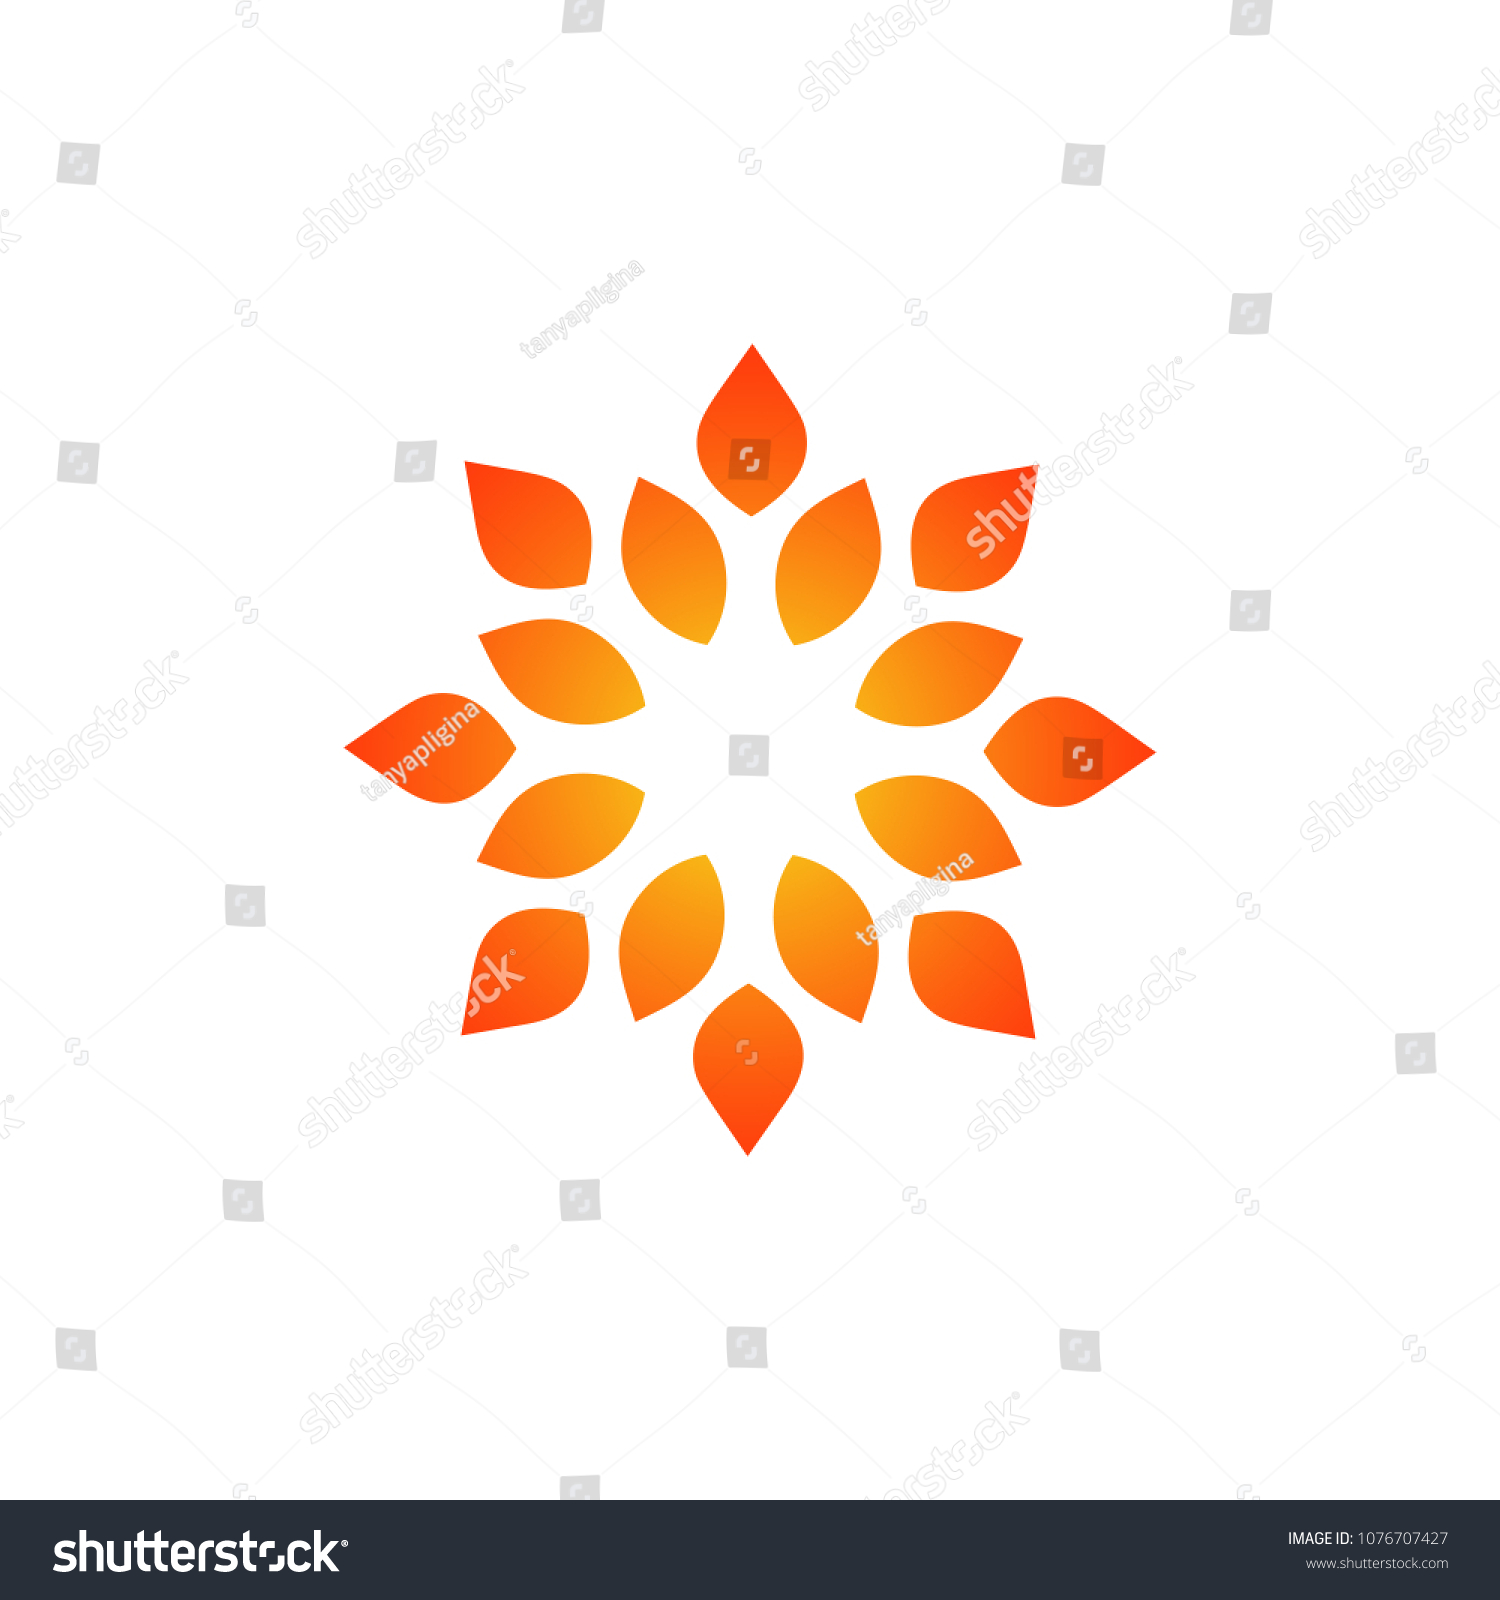 Template Creating Logo Form Curl Stylized Stock Vector 1076707427 ...